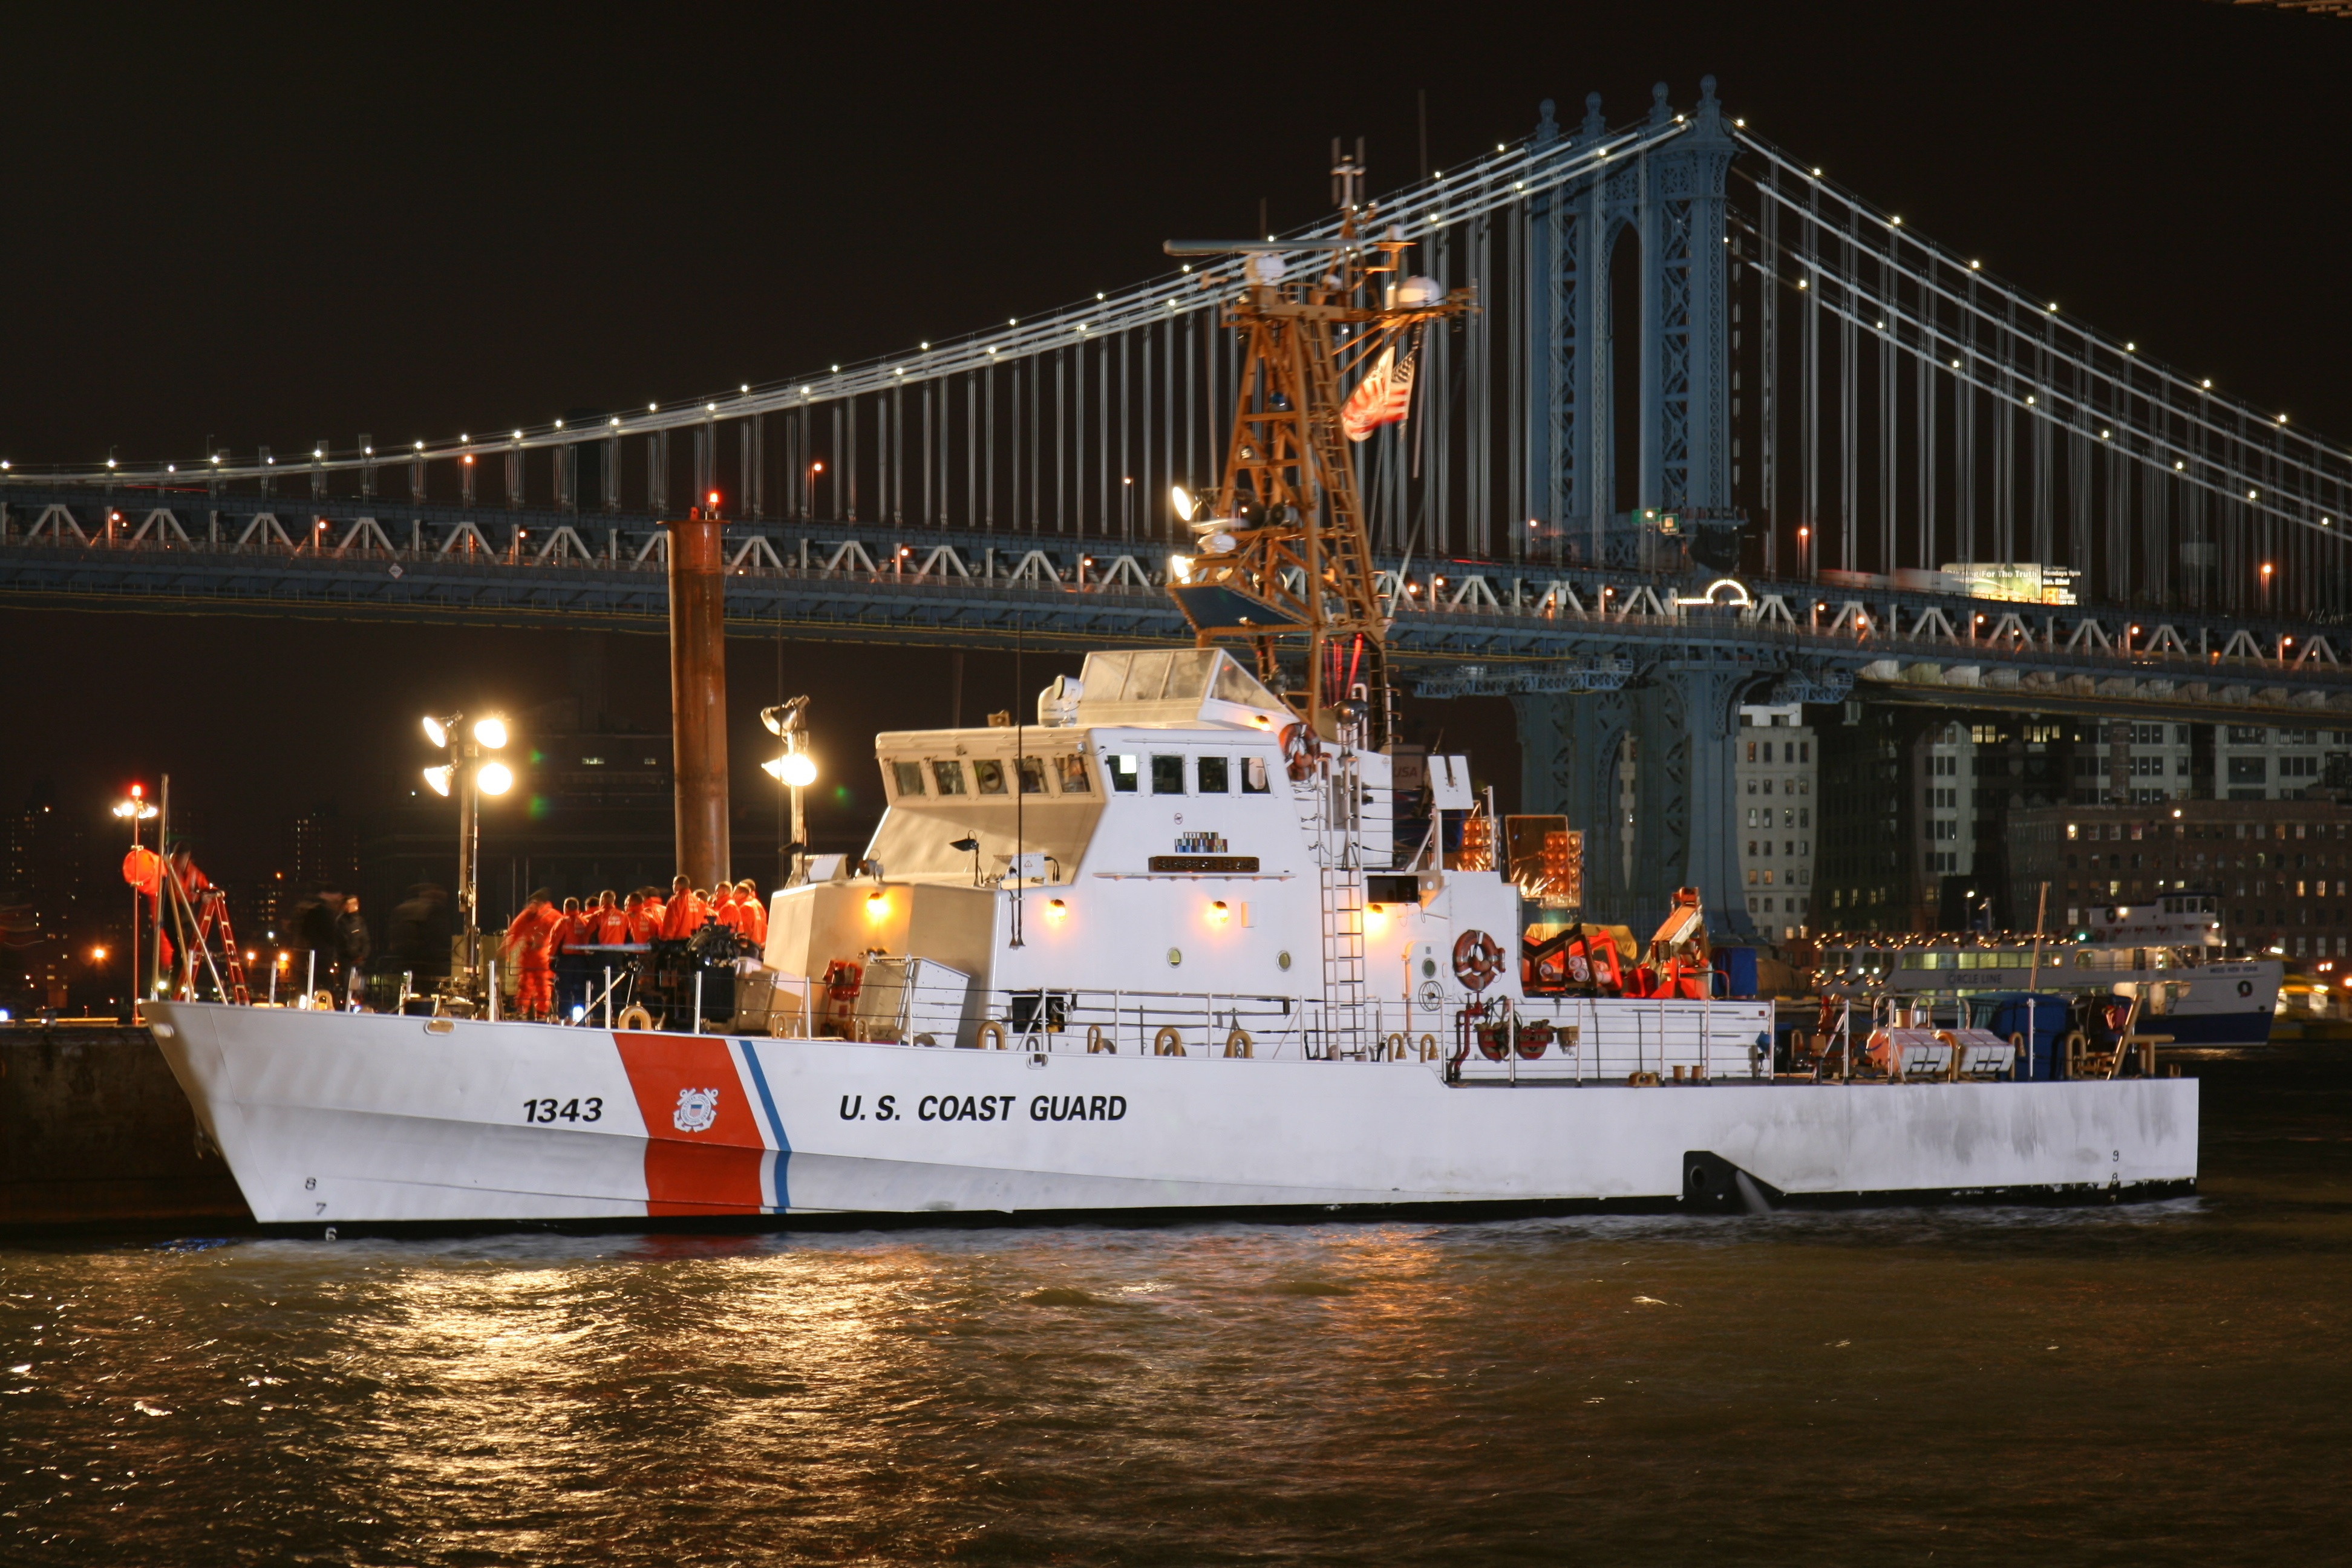 U.S. Coast Guard Issues Alert After Ship Heading Into Port Of New York Hit By Cybersecurity attack